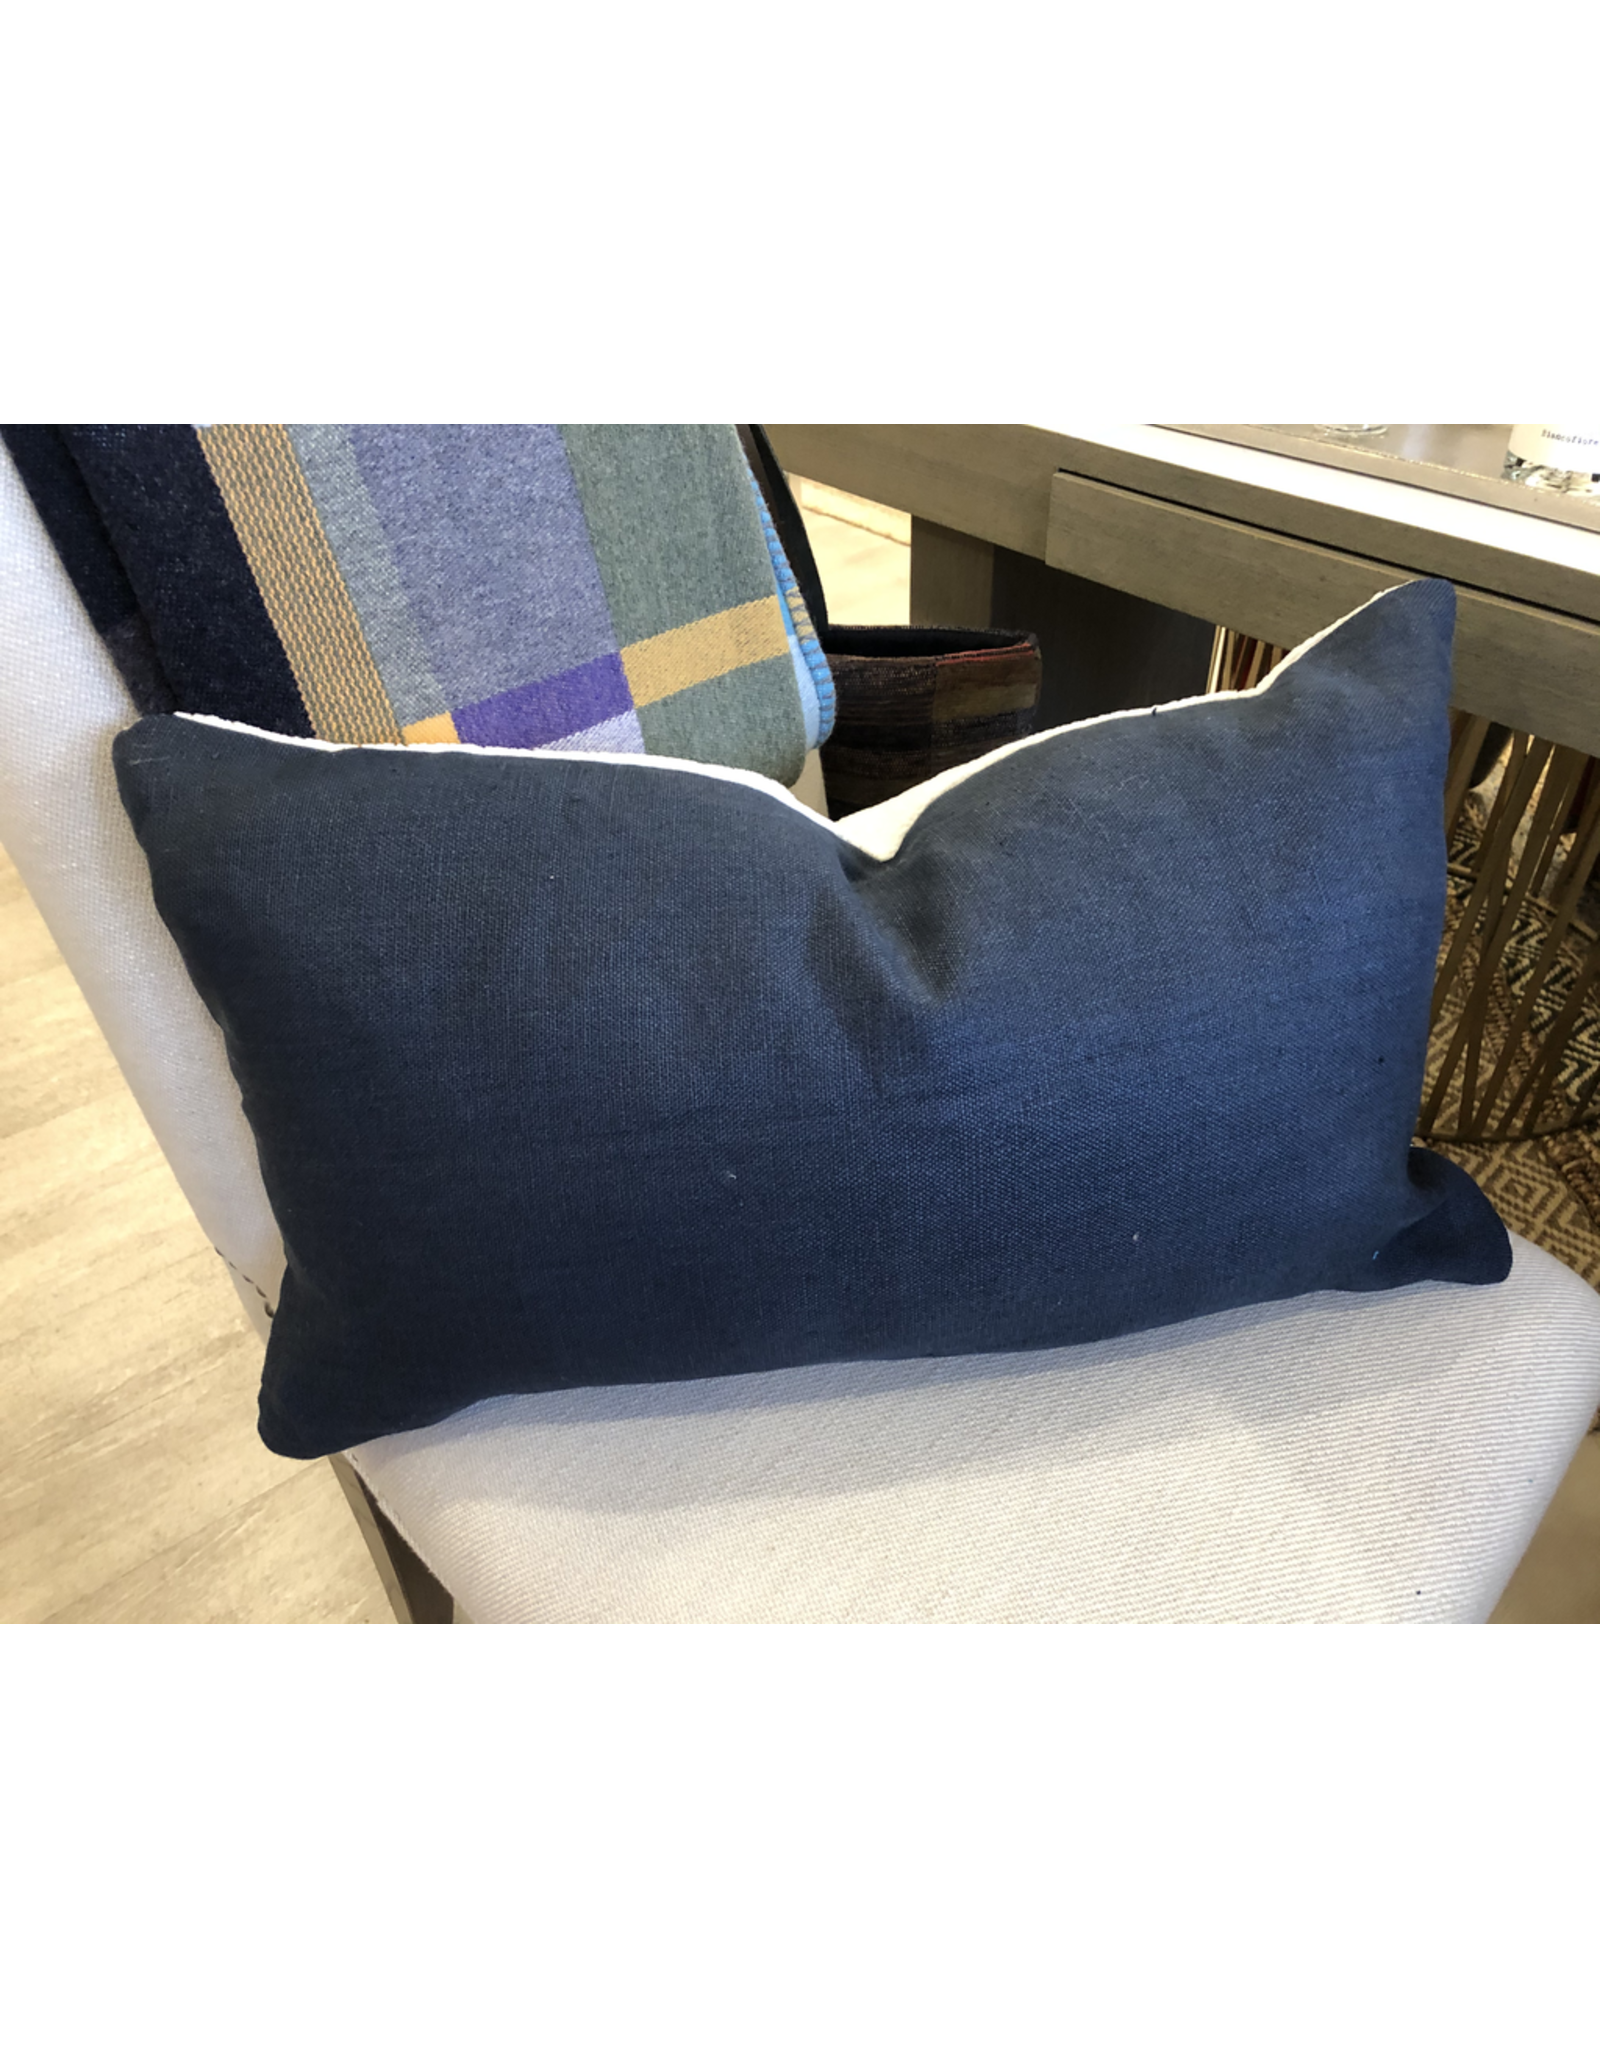 Bespoke Navy Linen / White Chenille  Lumbar Cushion 14 X 24 with Feather Filler